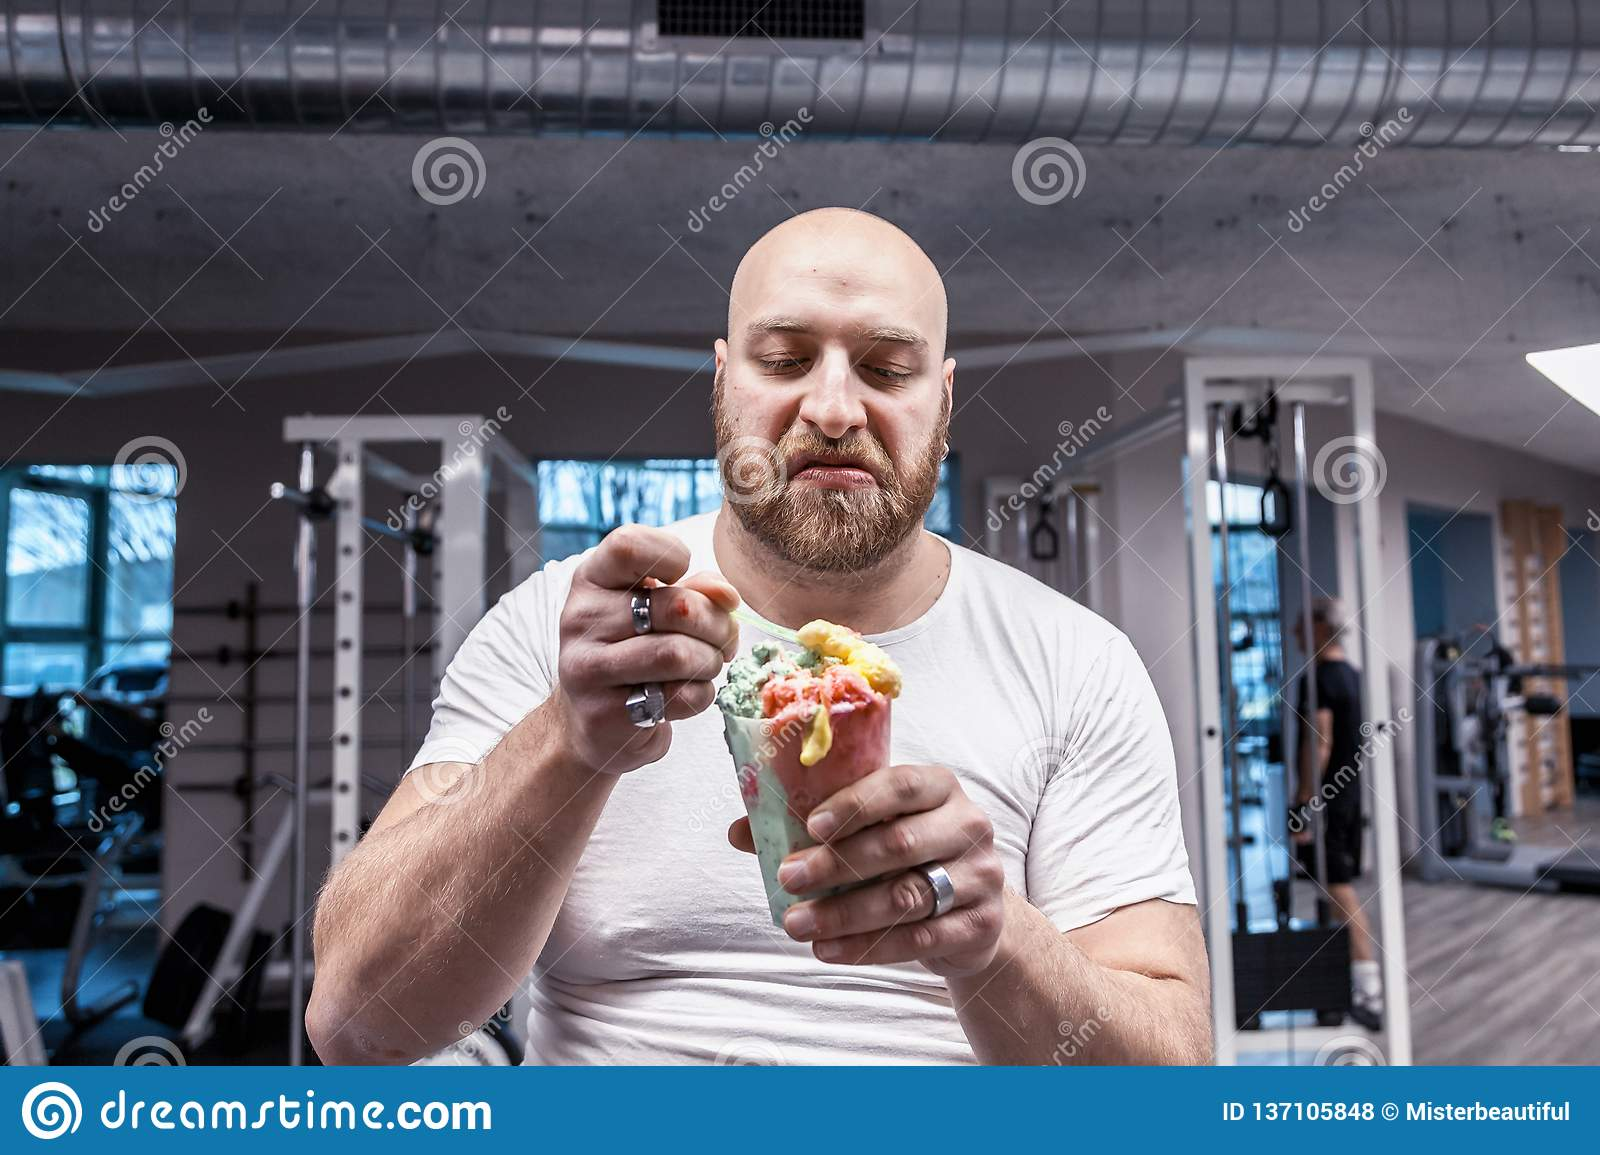 Portrait Of Athlete While Eating An Ice Cream On Break ...